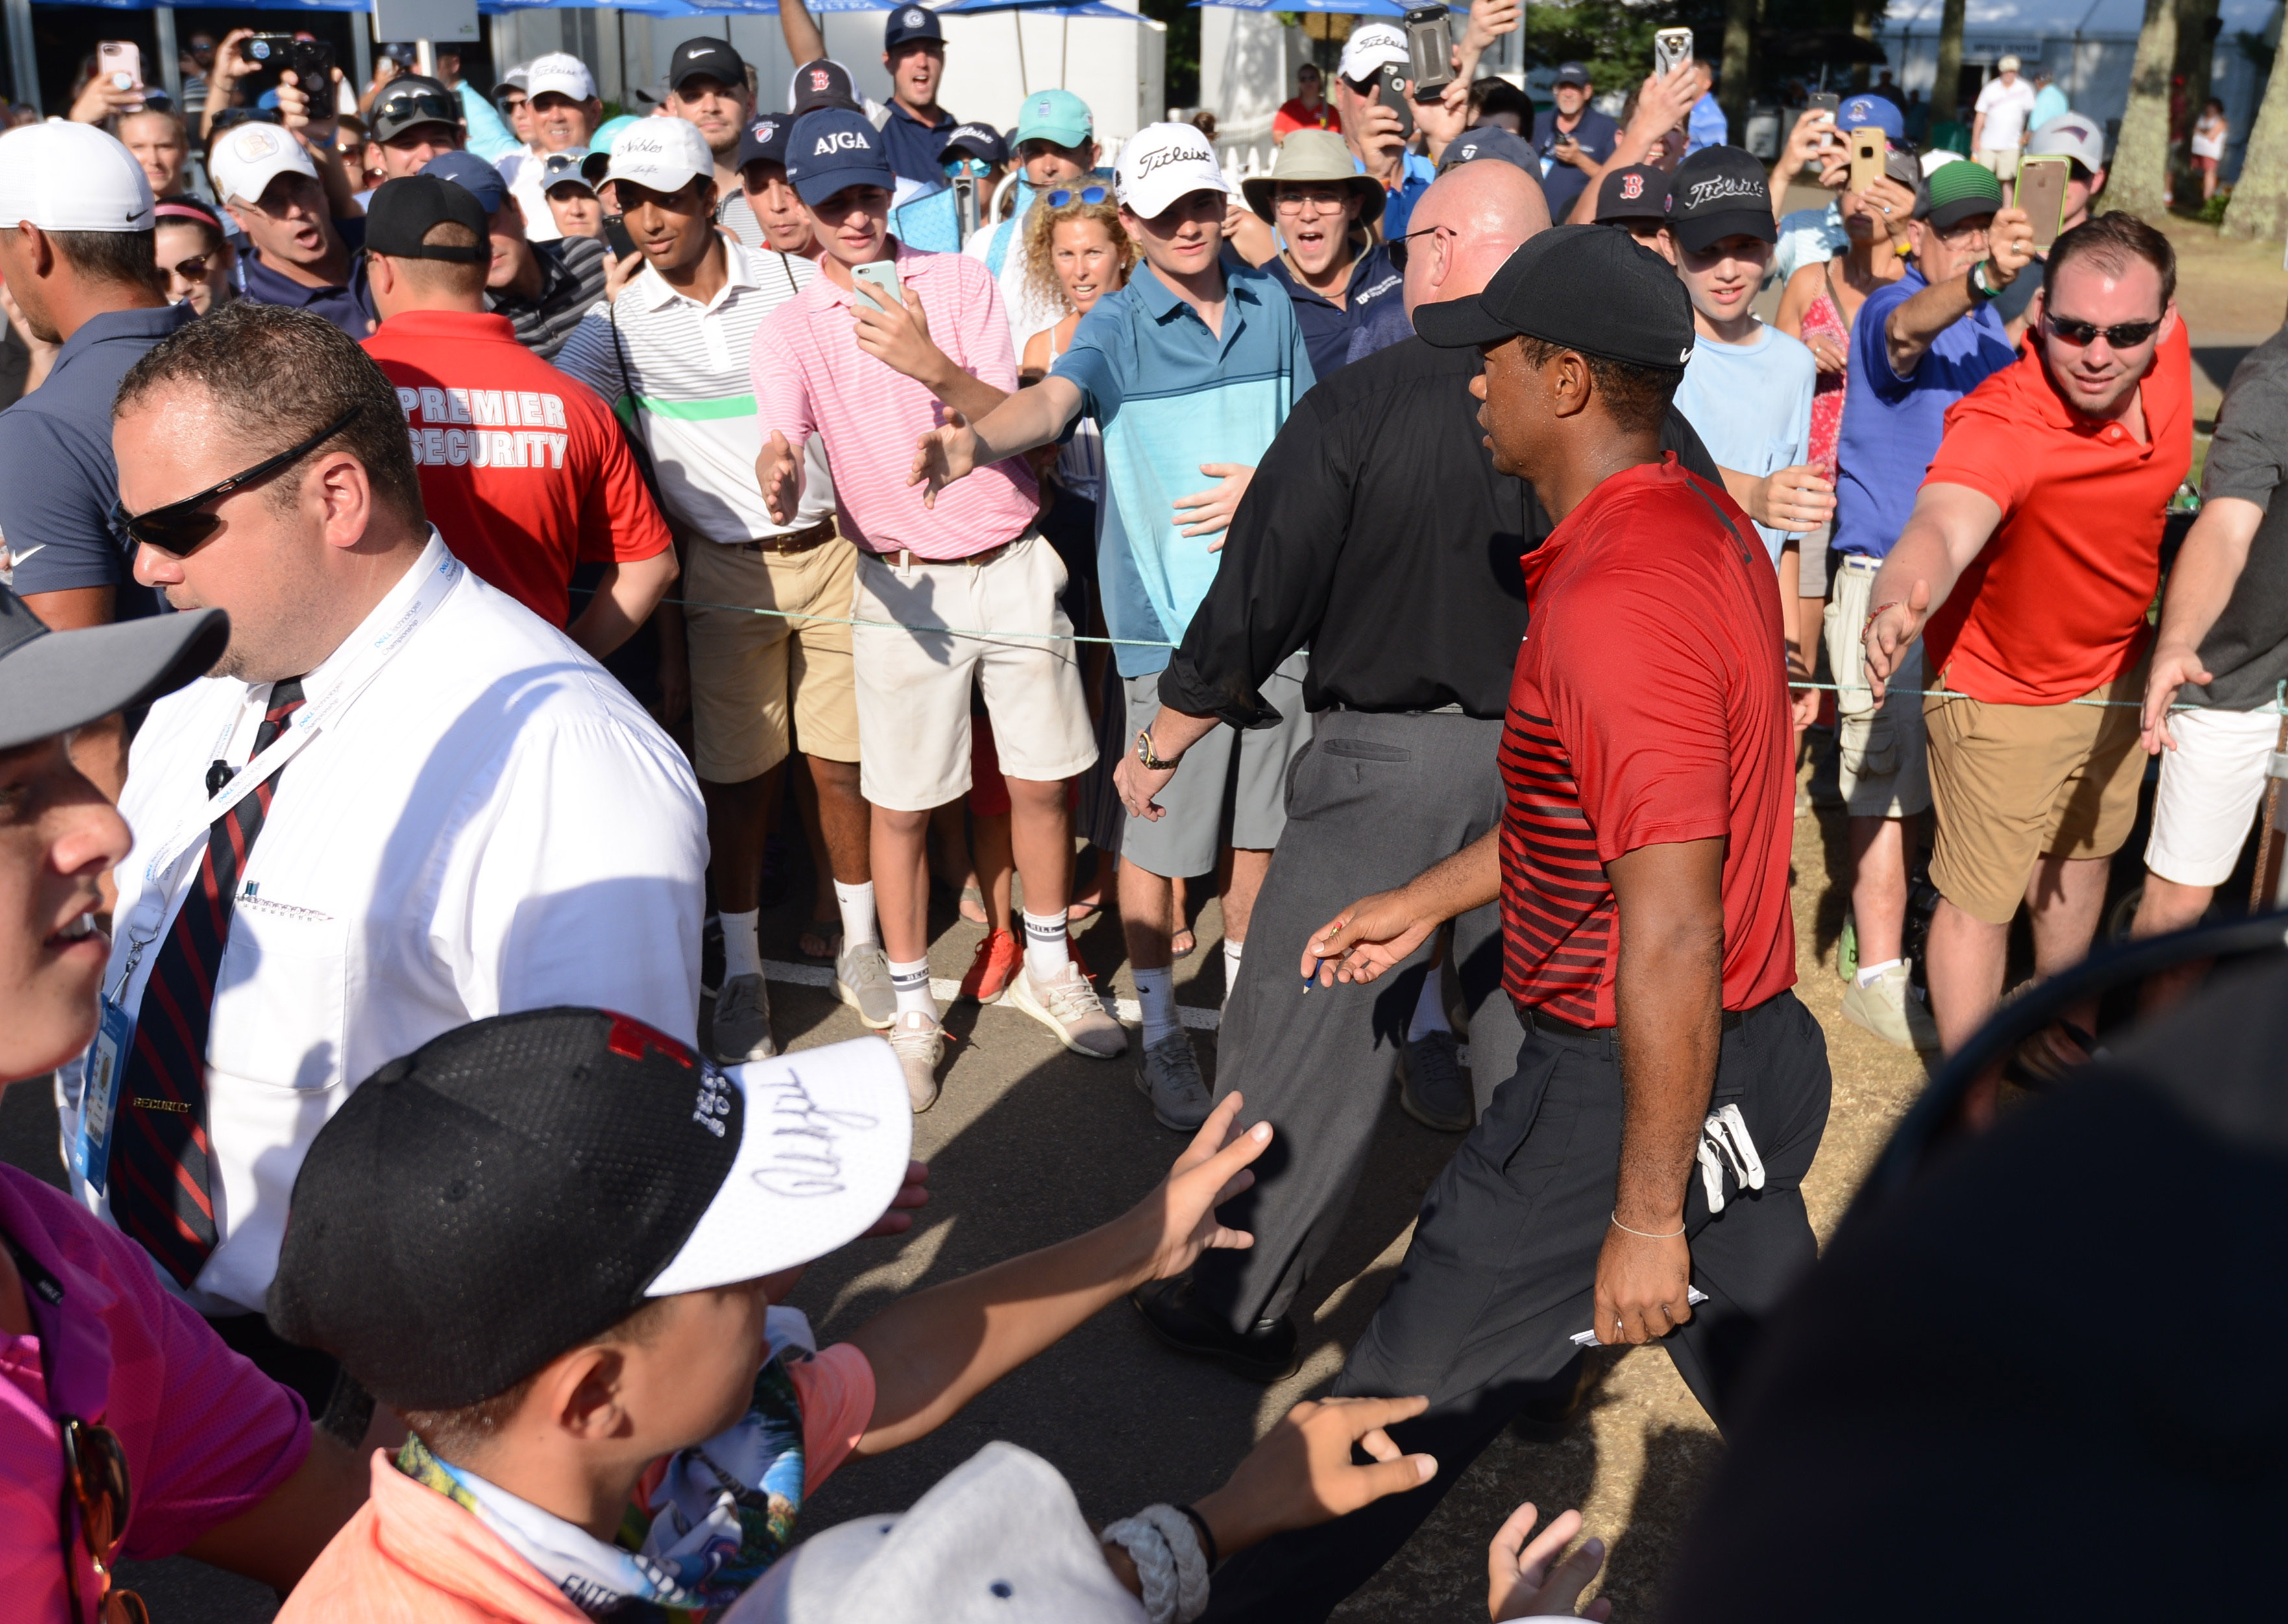 Sep 3, 2018; Norton, MA, USA; Tiger Woods walks through a large gallery after completing his final round of the Dell Technologies Championship golf tournament at TPC of Boston. Mandatory Credit: Mark Konezny-USA TODAY Sports